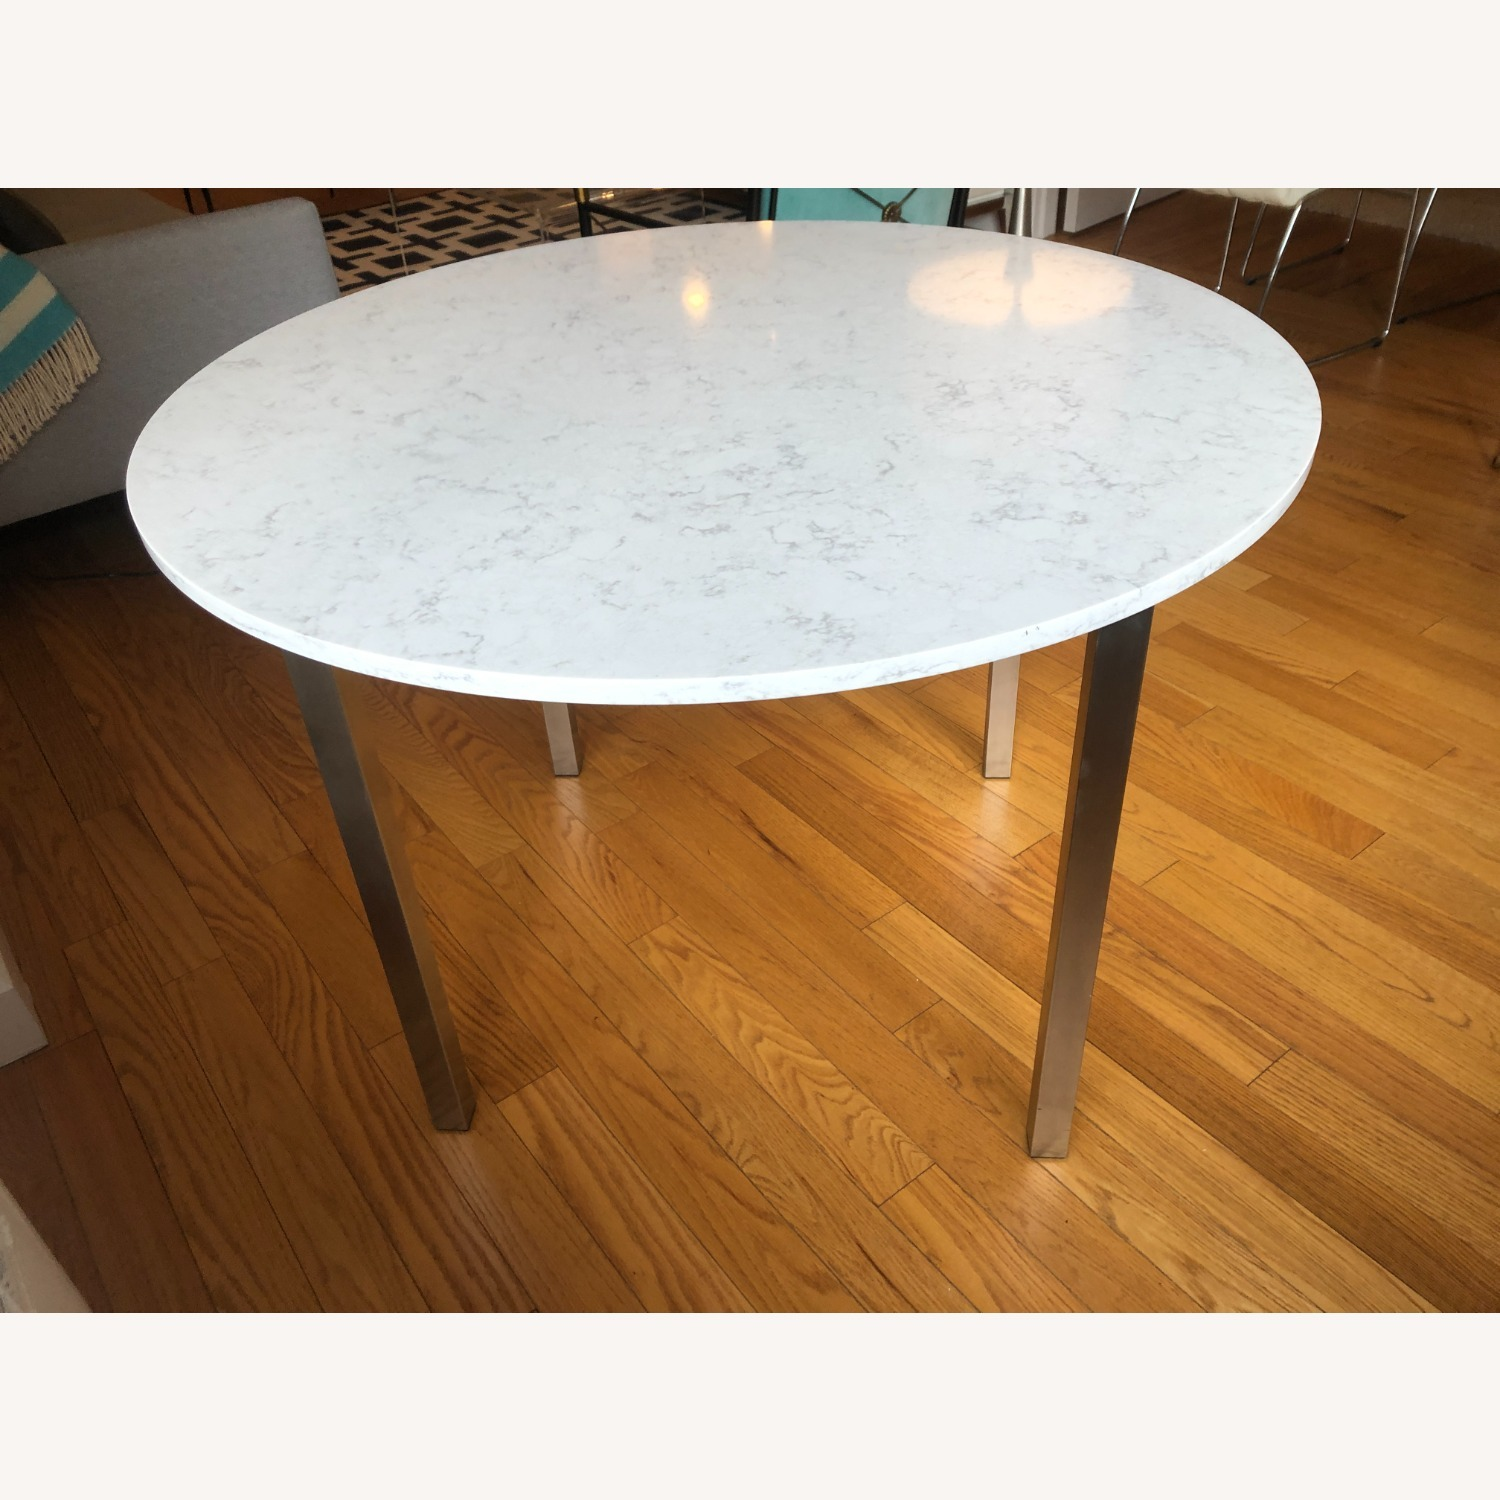 Room & Board Round Dining Table - image-3